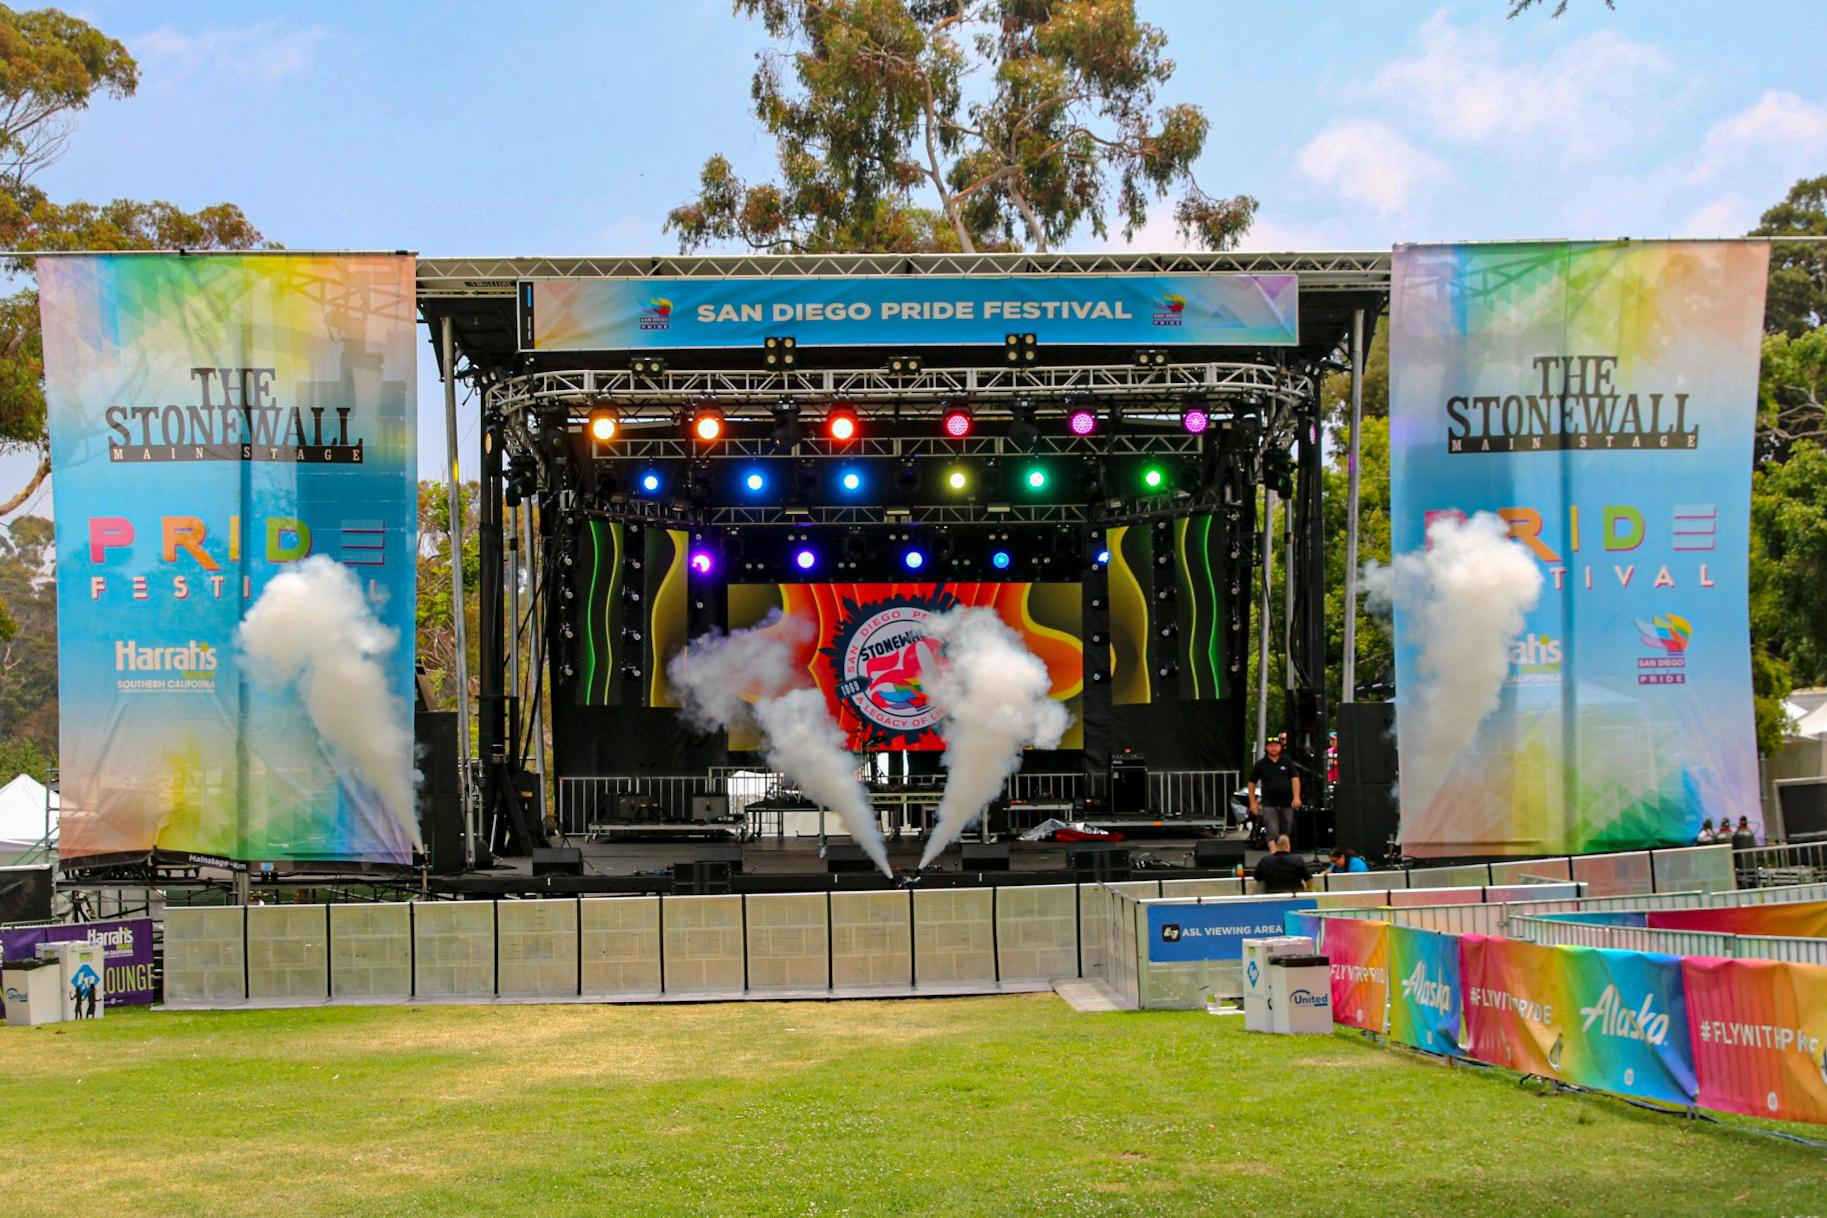 Stonewall Stage San Diego Pride 2019 Pro Systems Av Event production